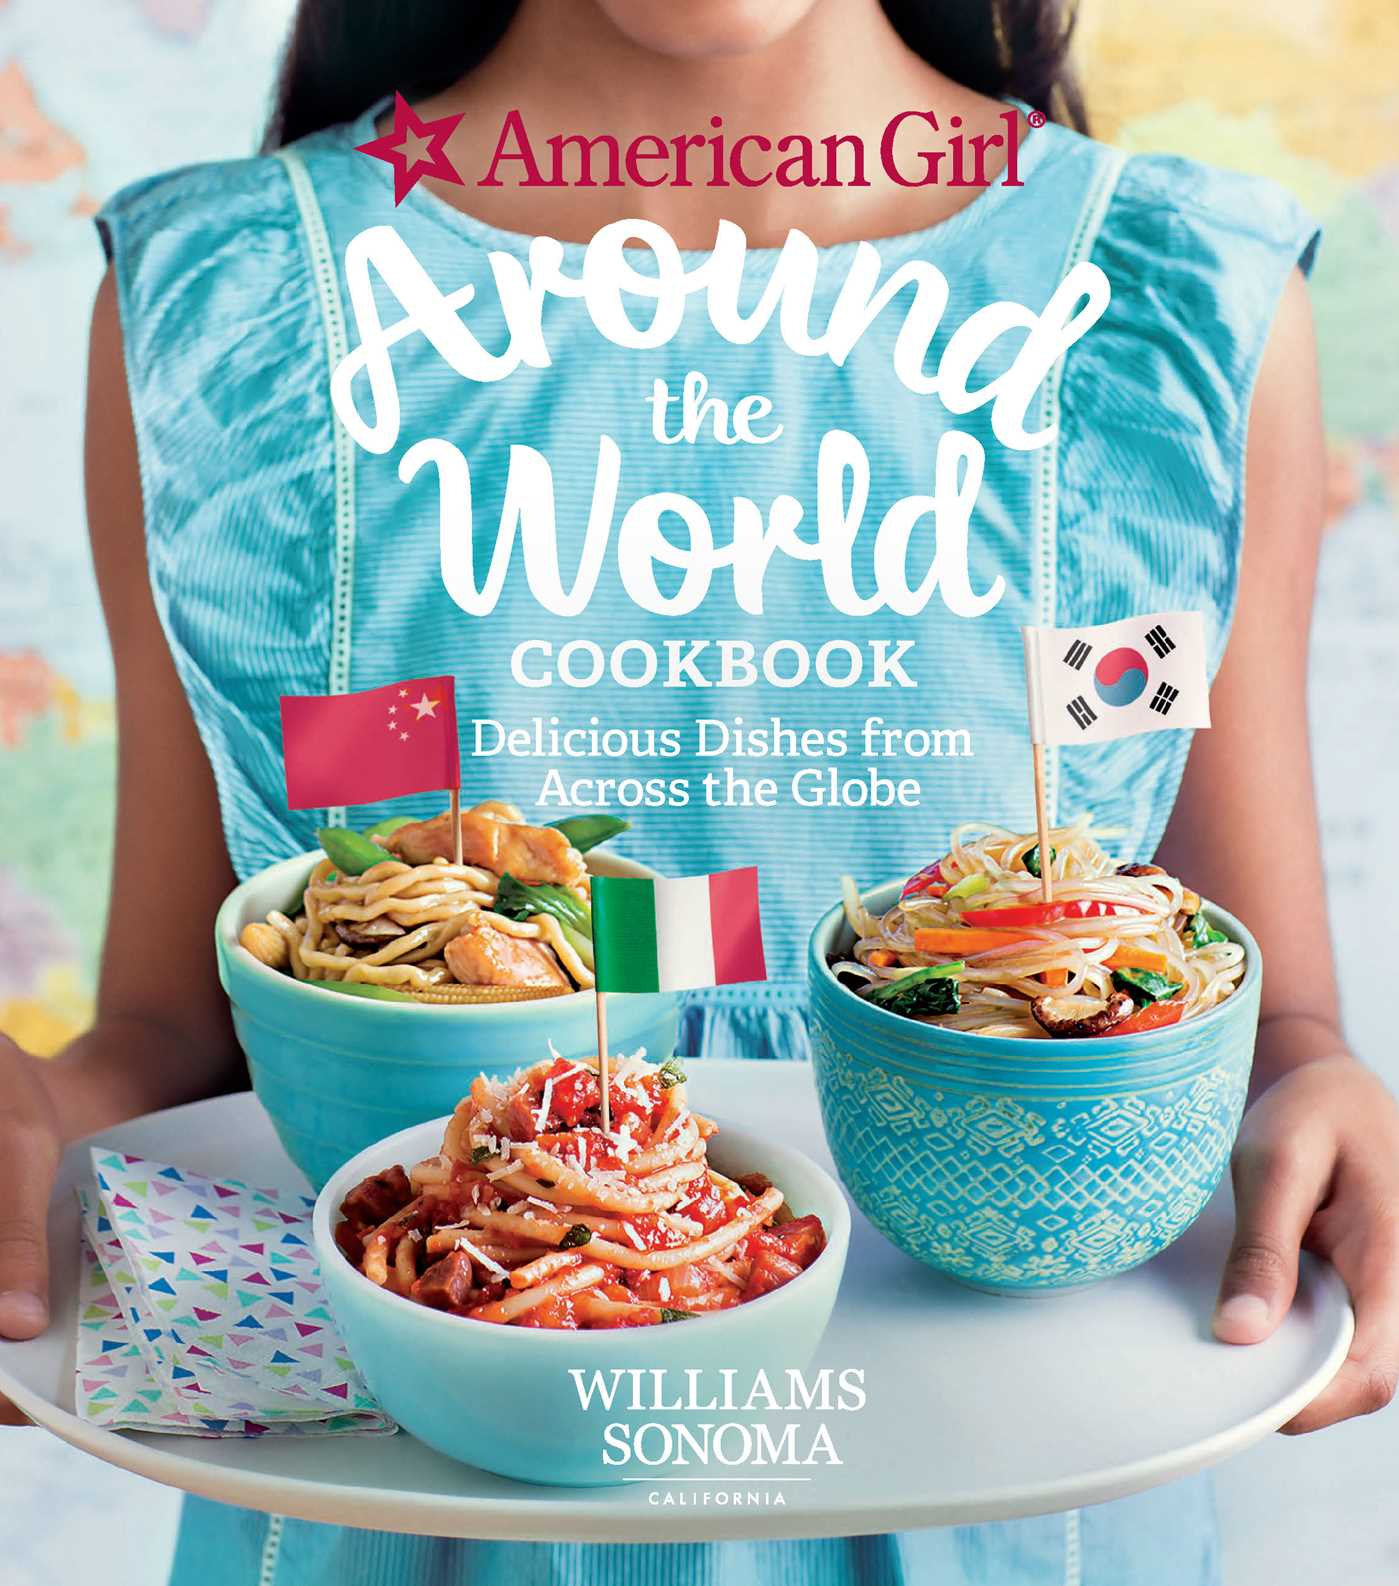 American girl around the world cookbook 9781681882802 hr